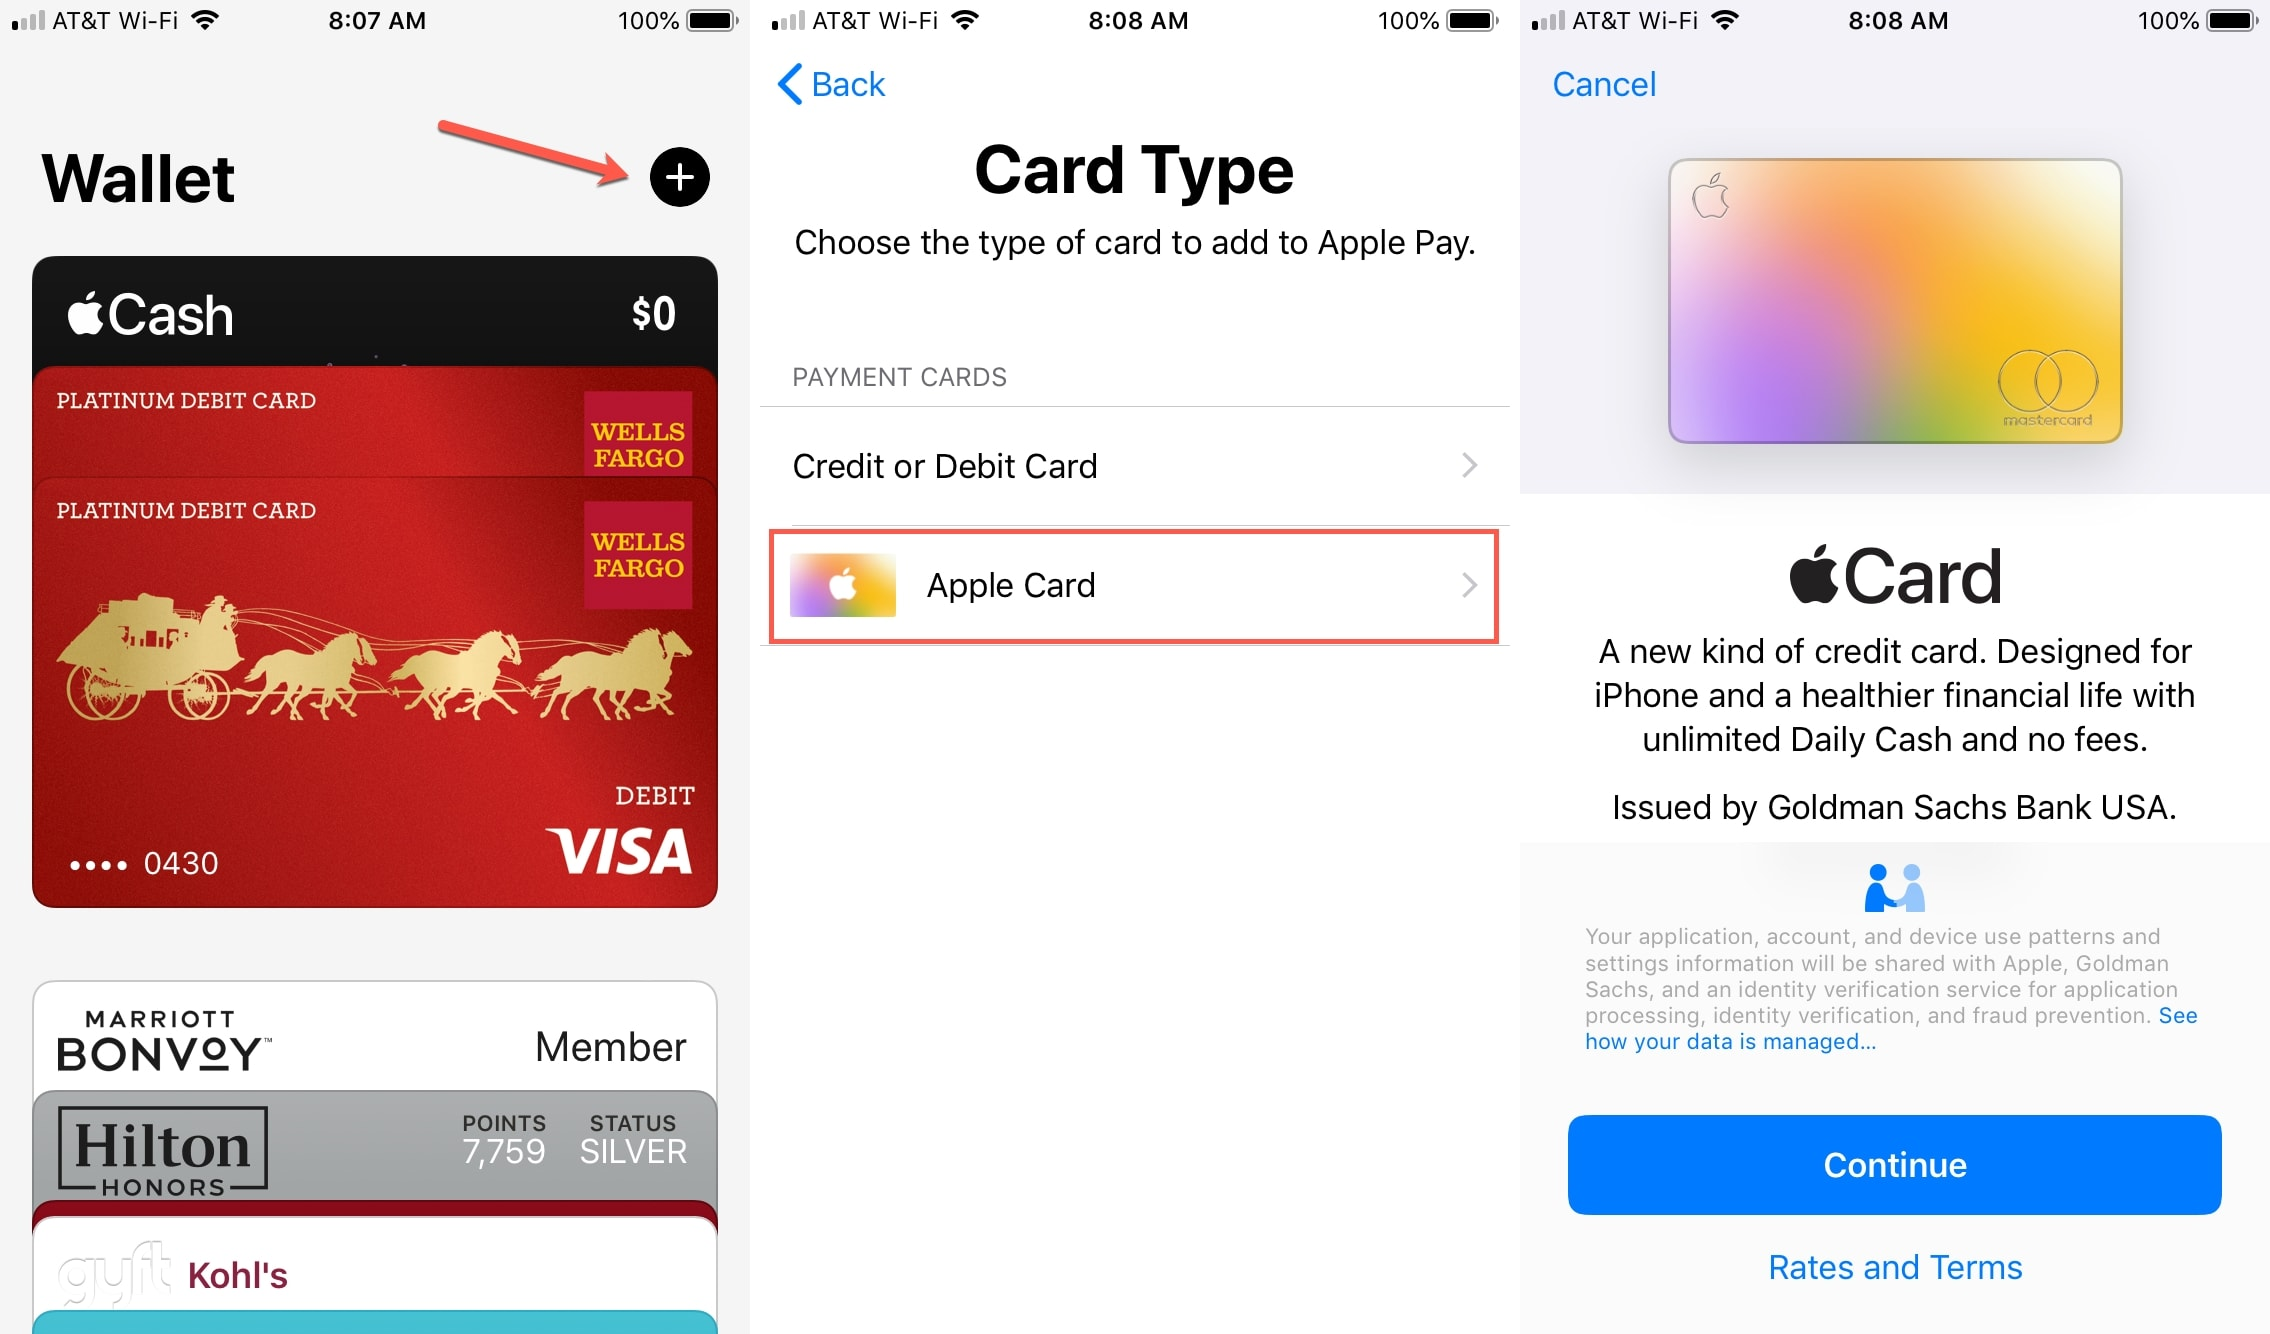 Apply for Apple Card Wallet